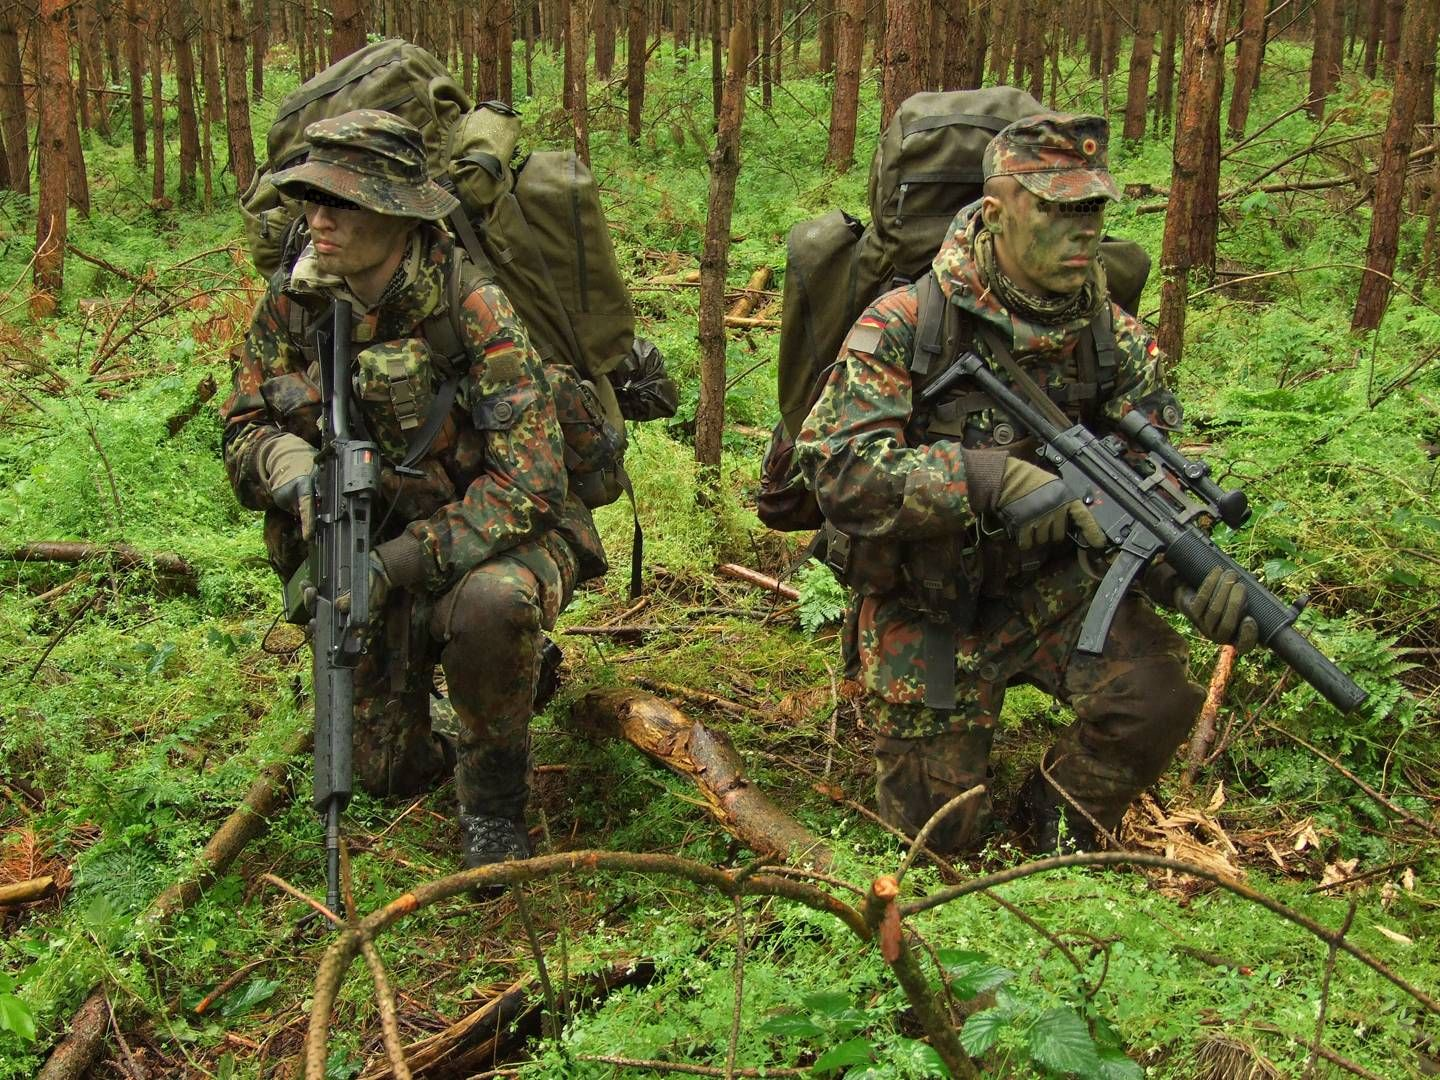 german flecktarn airsoft allemand pinterest to be the outfit and hats. Black Bedroom Furniture Sets. Home Design Ideas